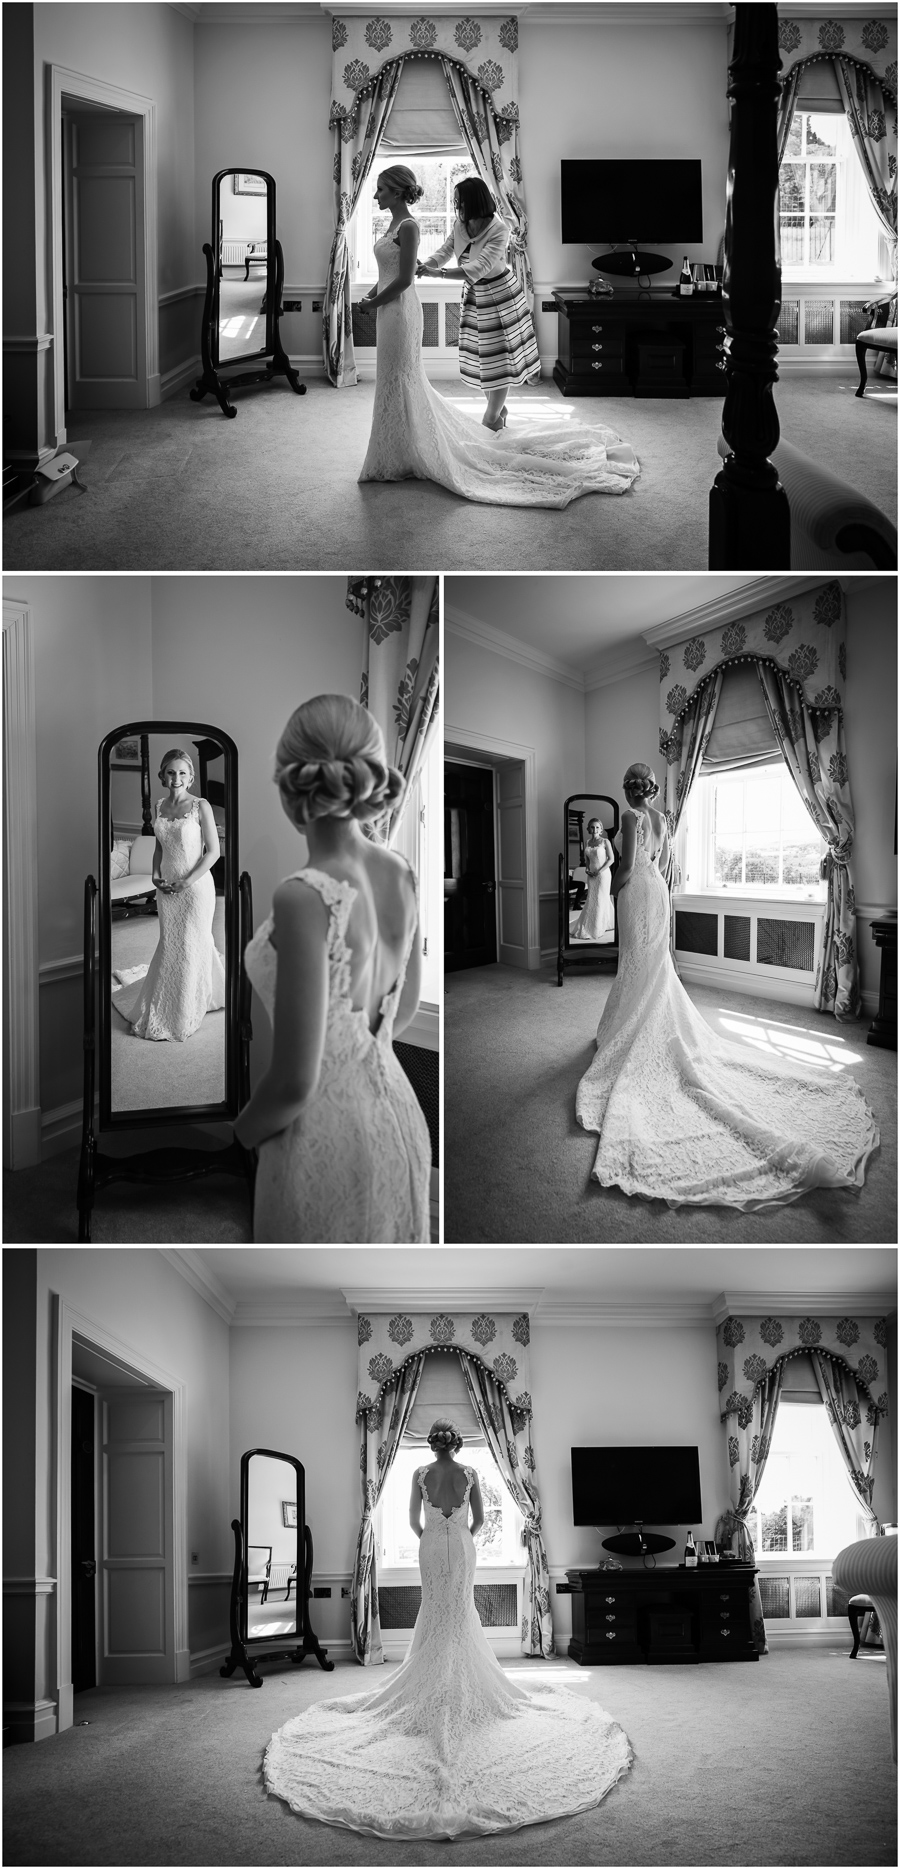 Denton Hall Wedding - bride getting ready